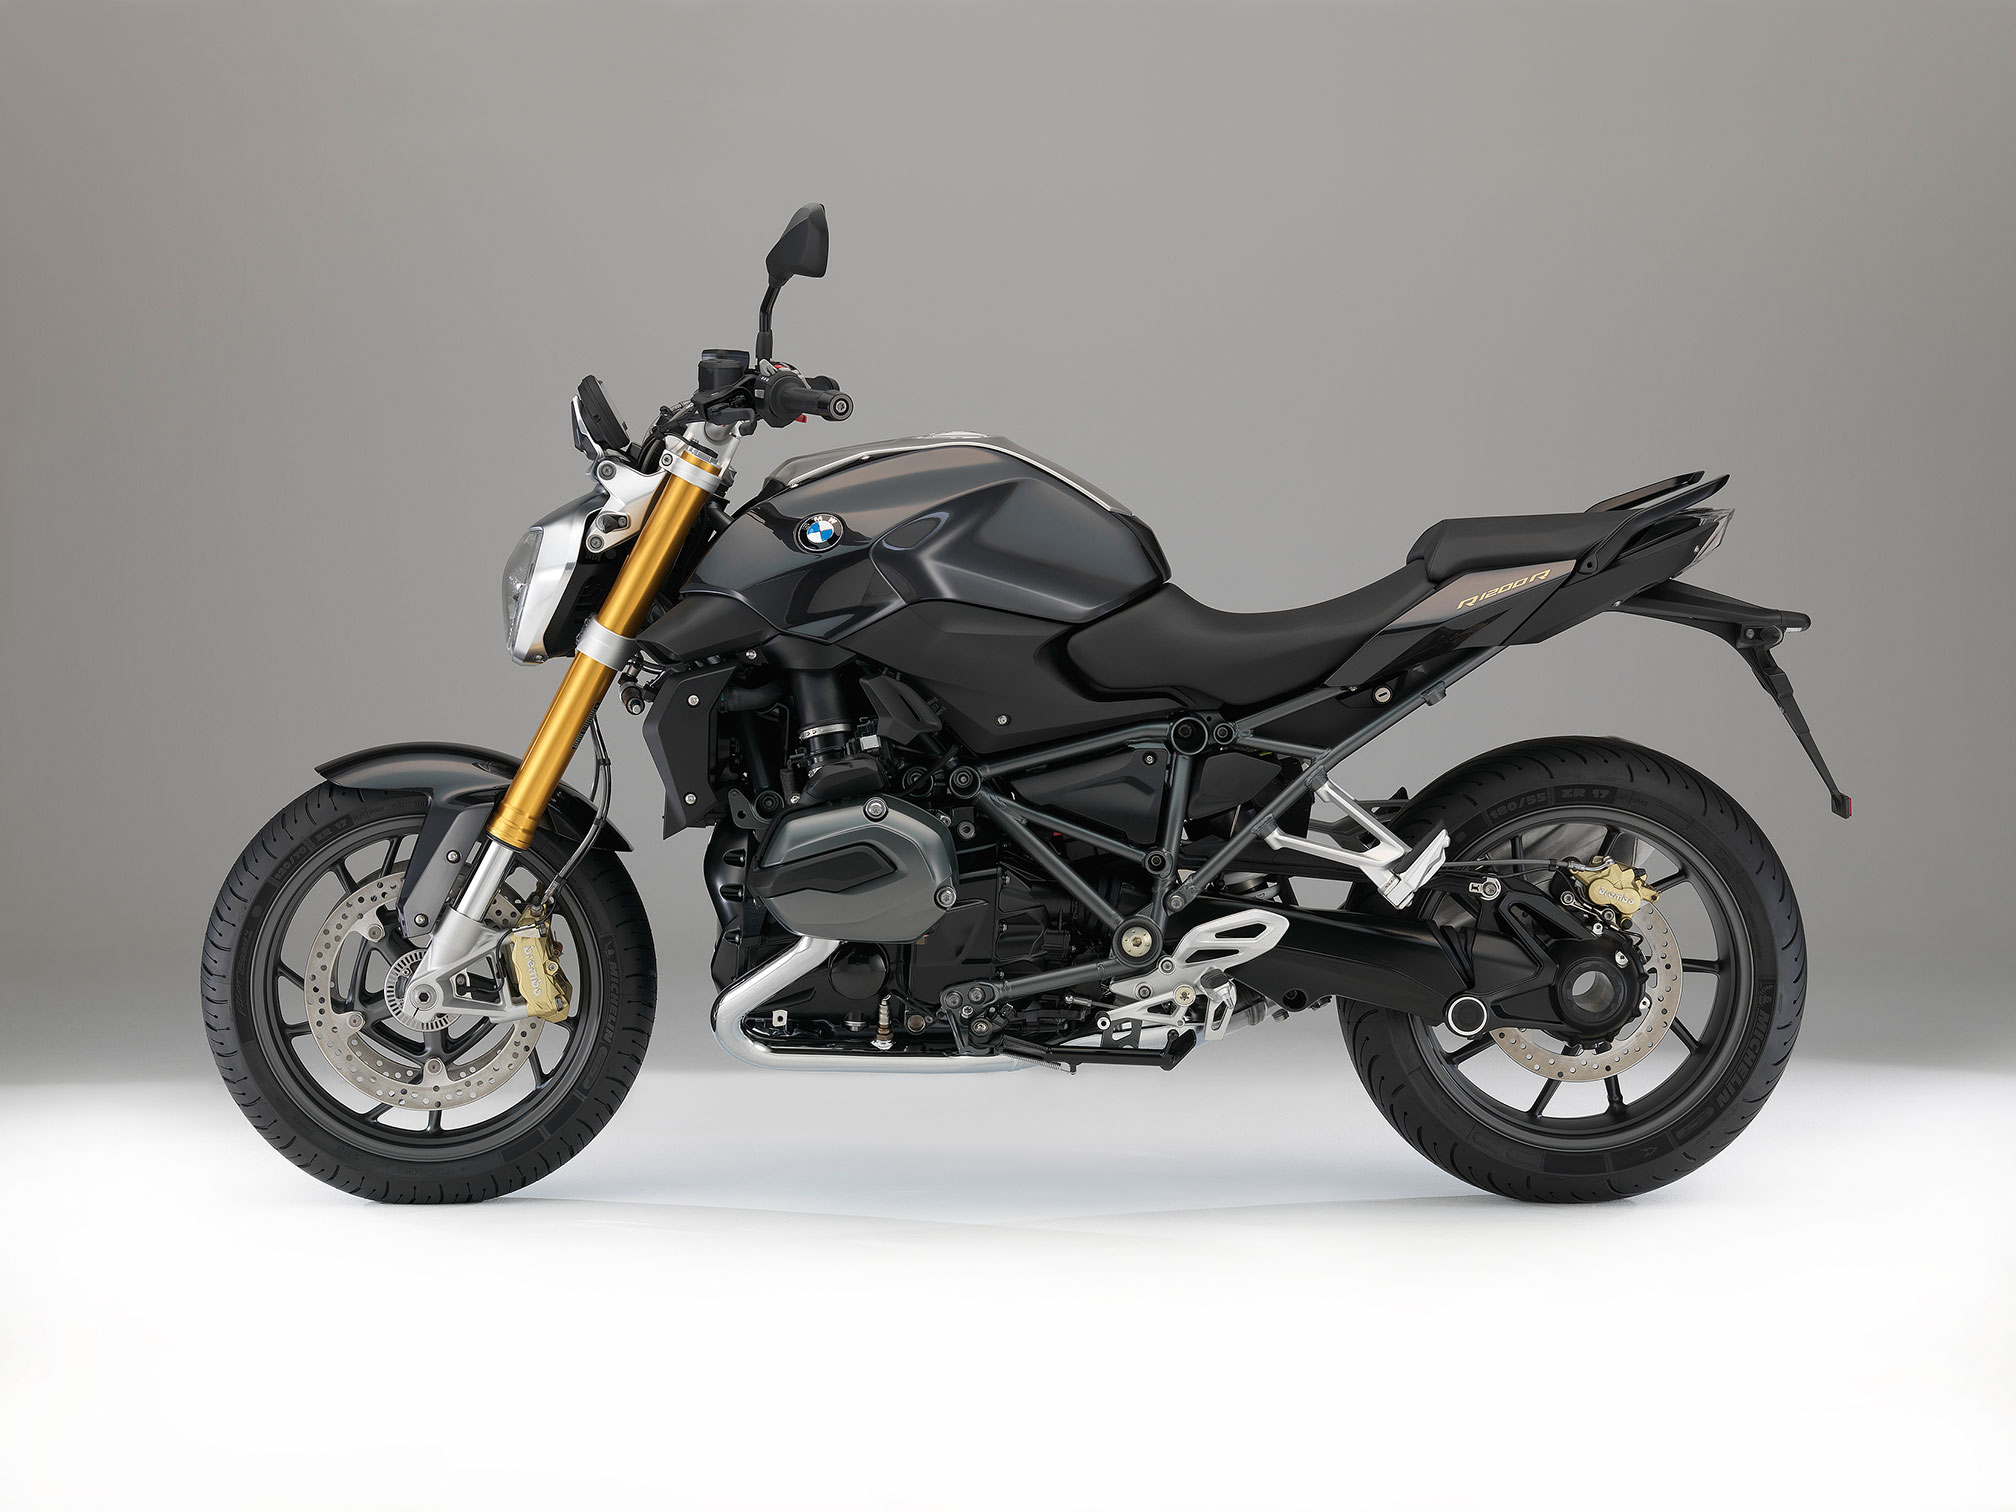 2016 BMW R1200R Review